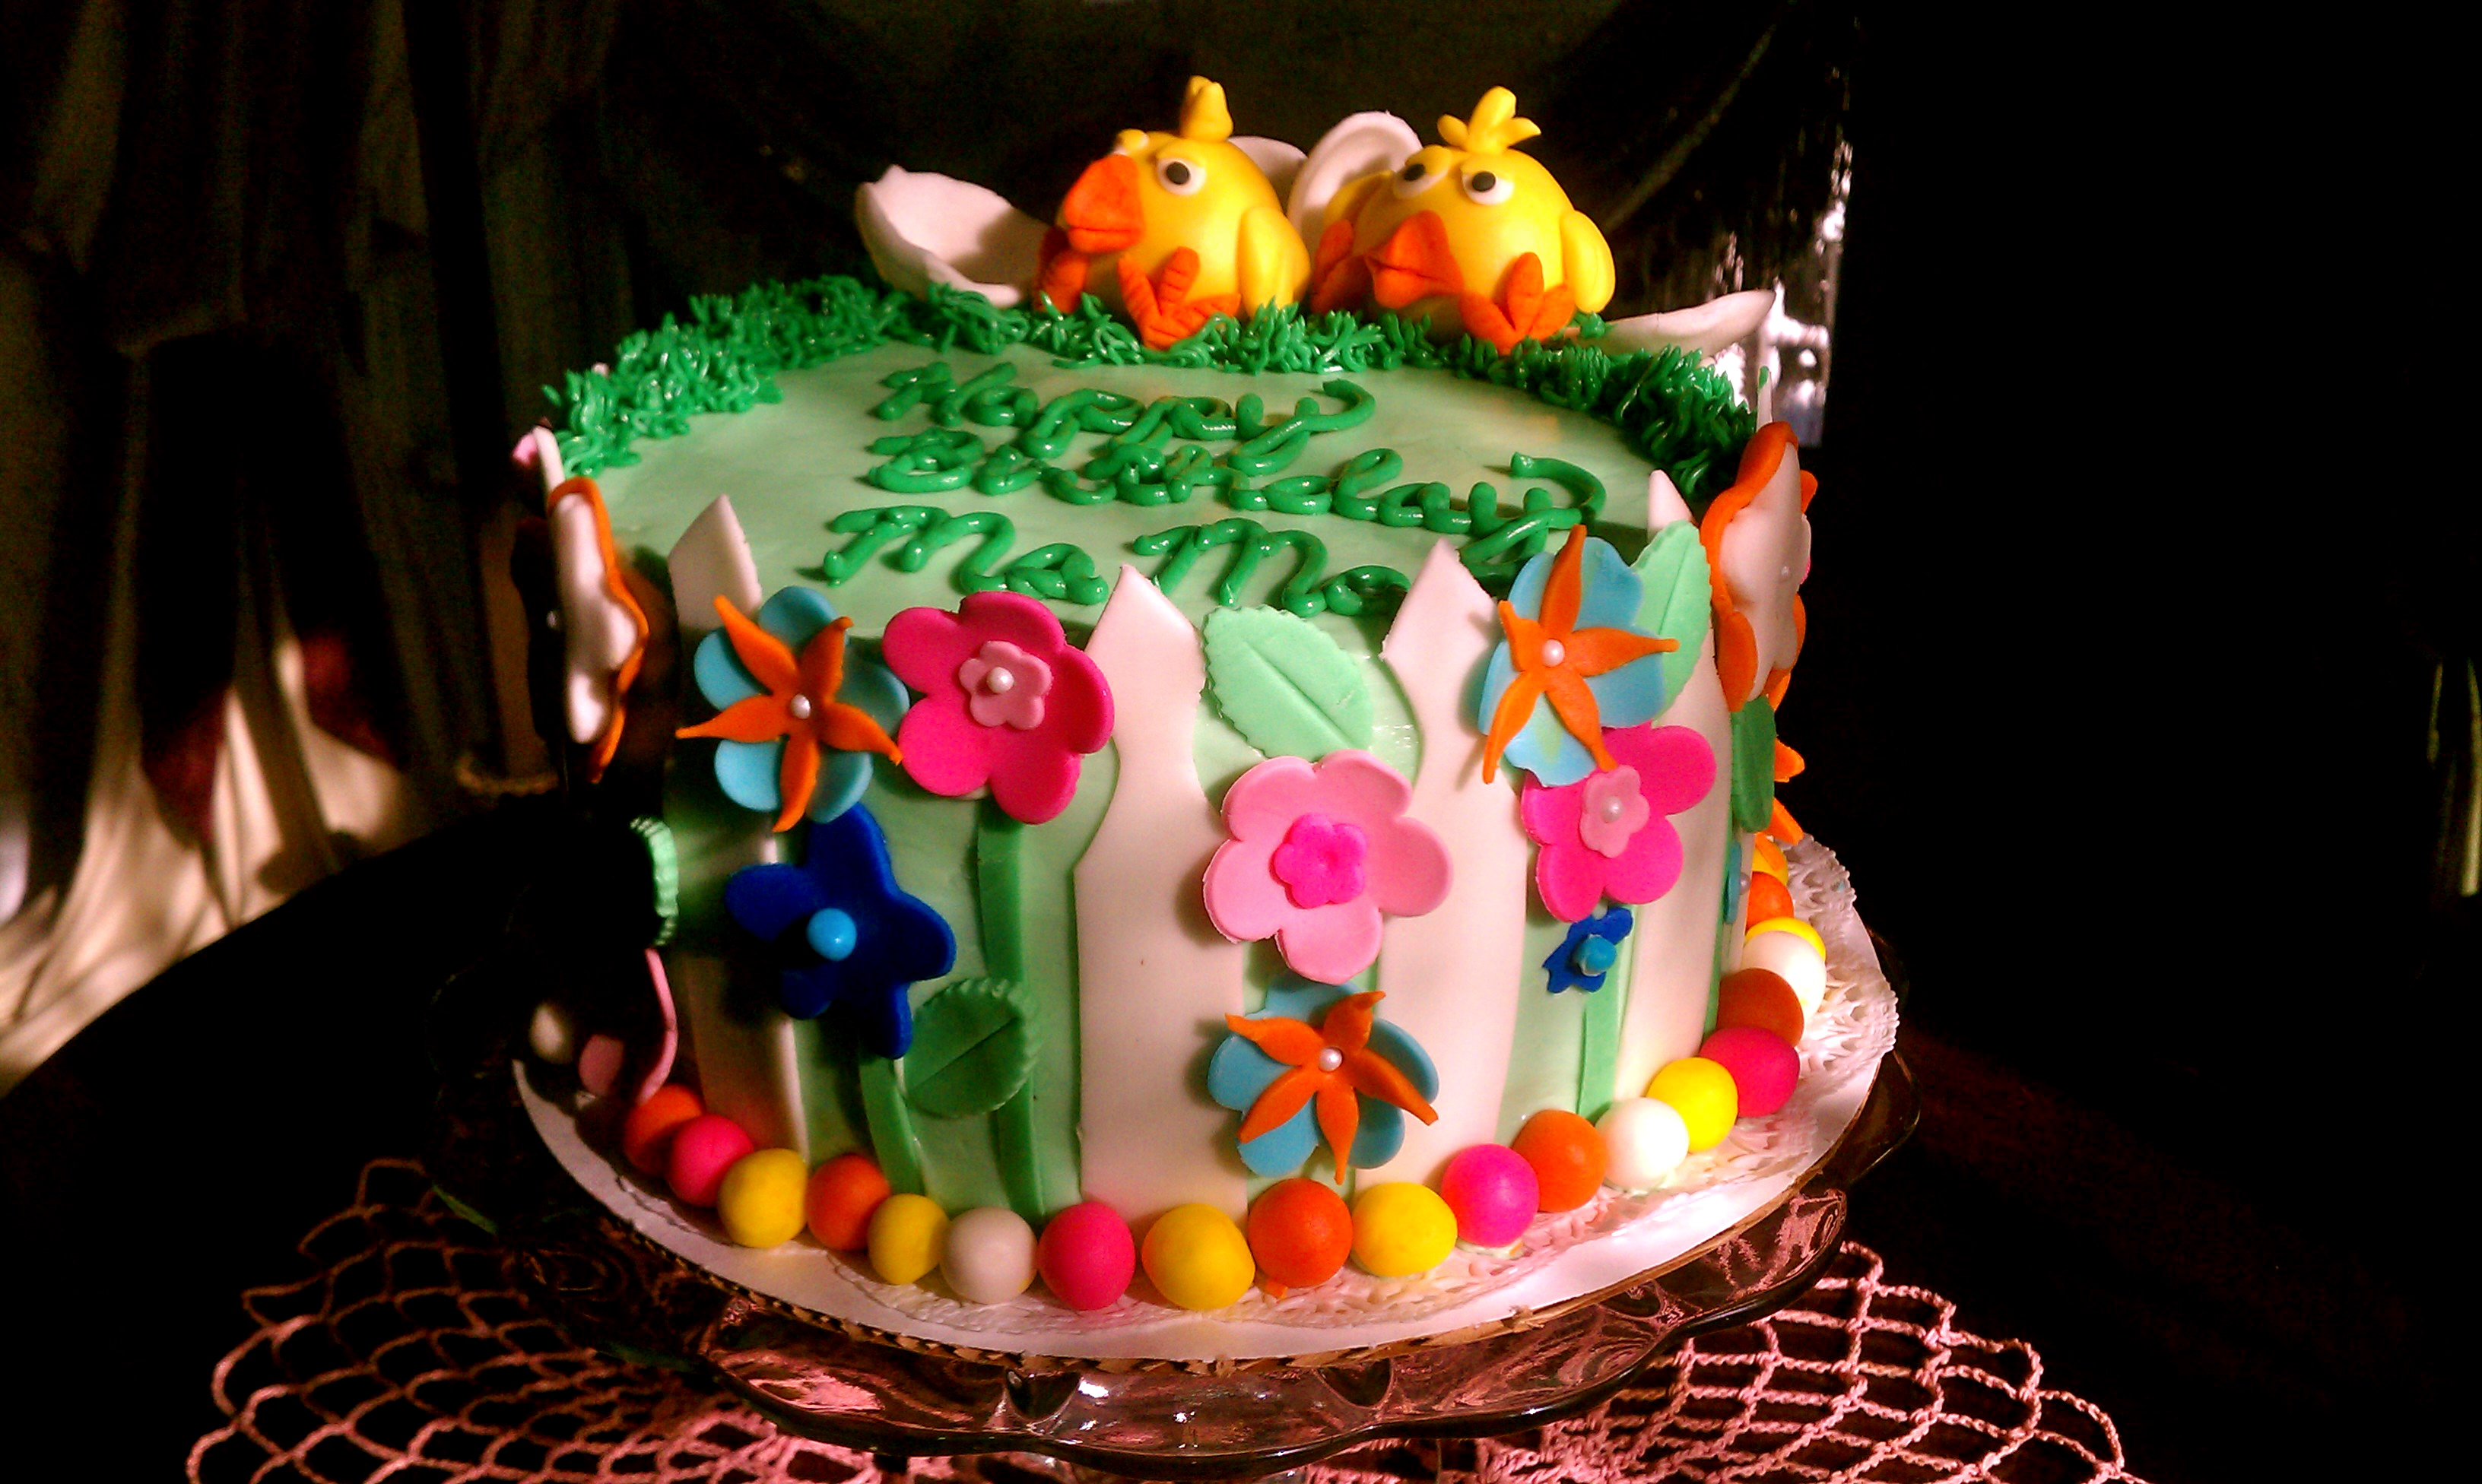 Birthday Cake In Hd Images : 15 Best HD Birthday Cake Images to Get Decoration Ideas ...